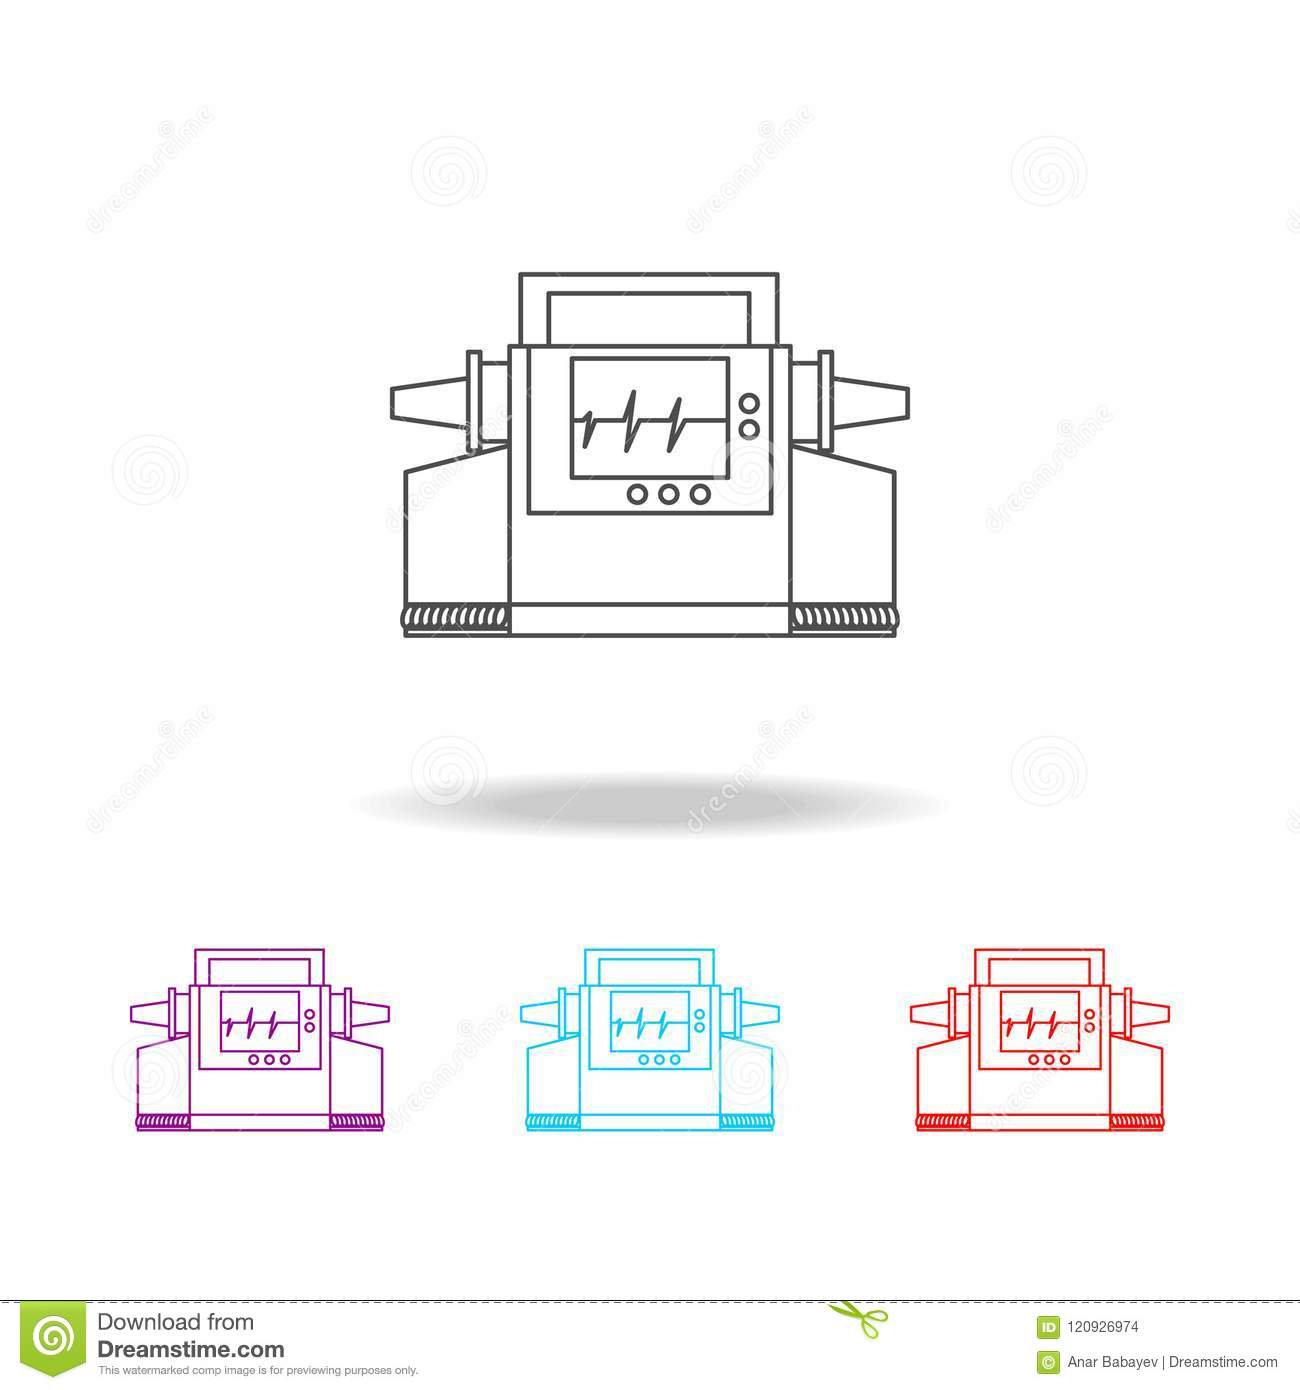 hight resolution of electrocardiogram device and heart pulse on screen line icon elements of medical tools in multi colored icons premium quality graphic design icon